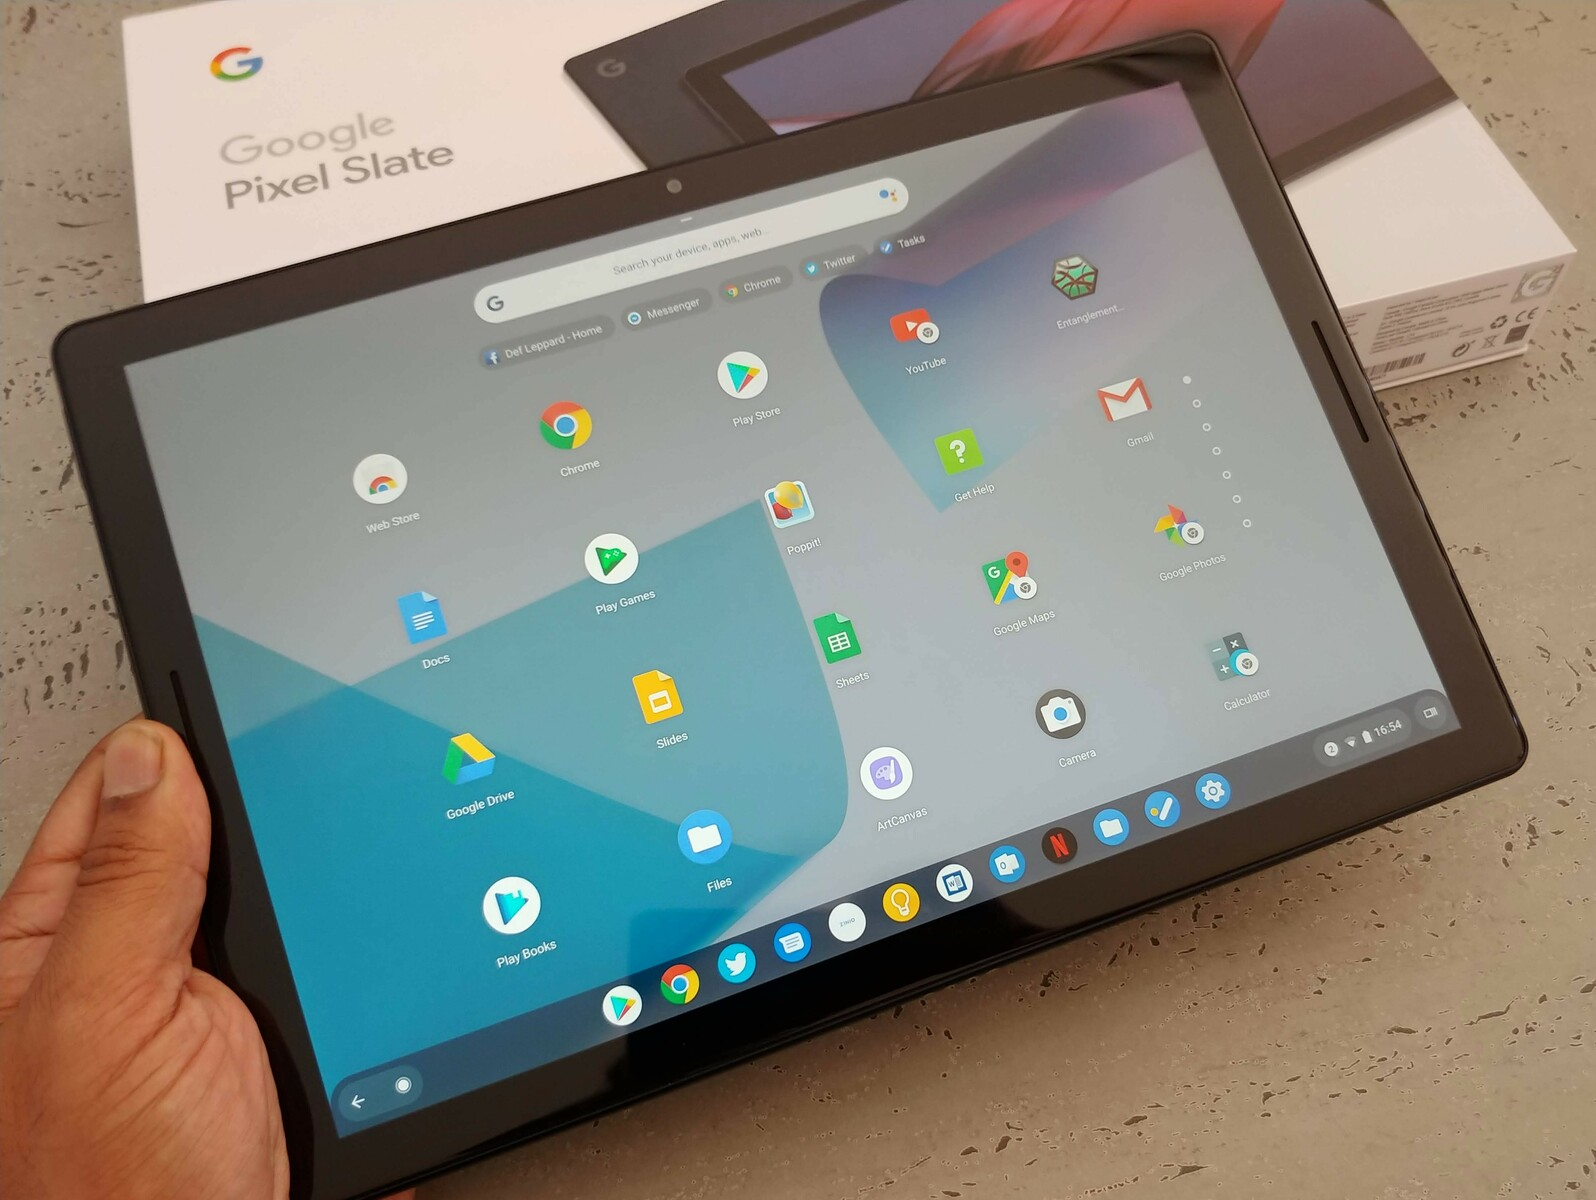 Google reportedly shifting employees away from tablet, laptop division